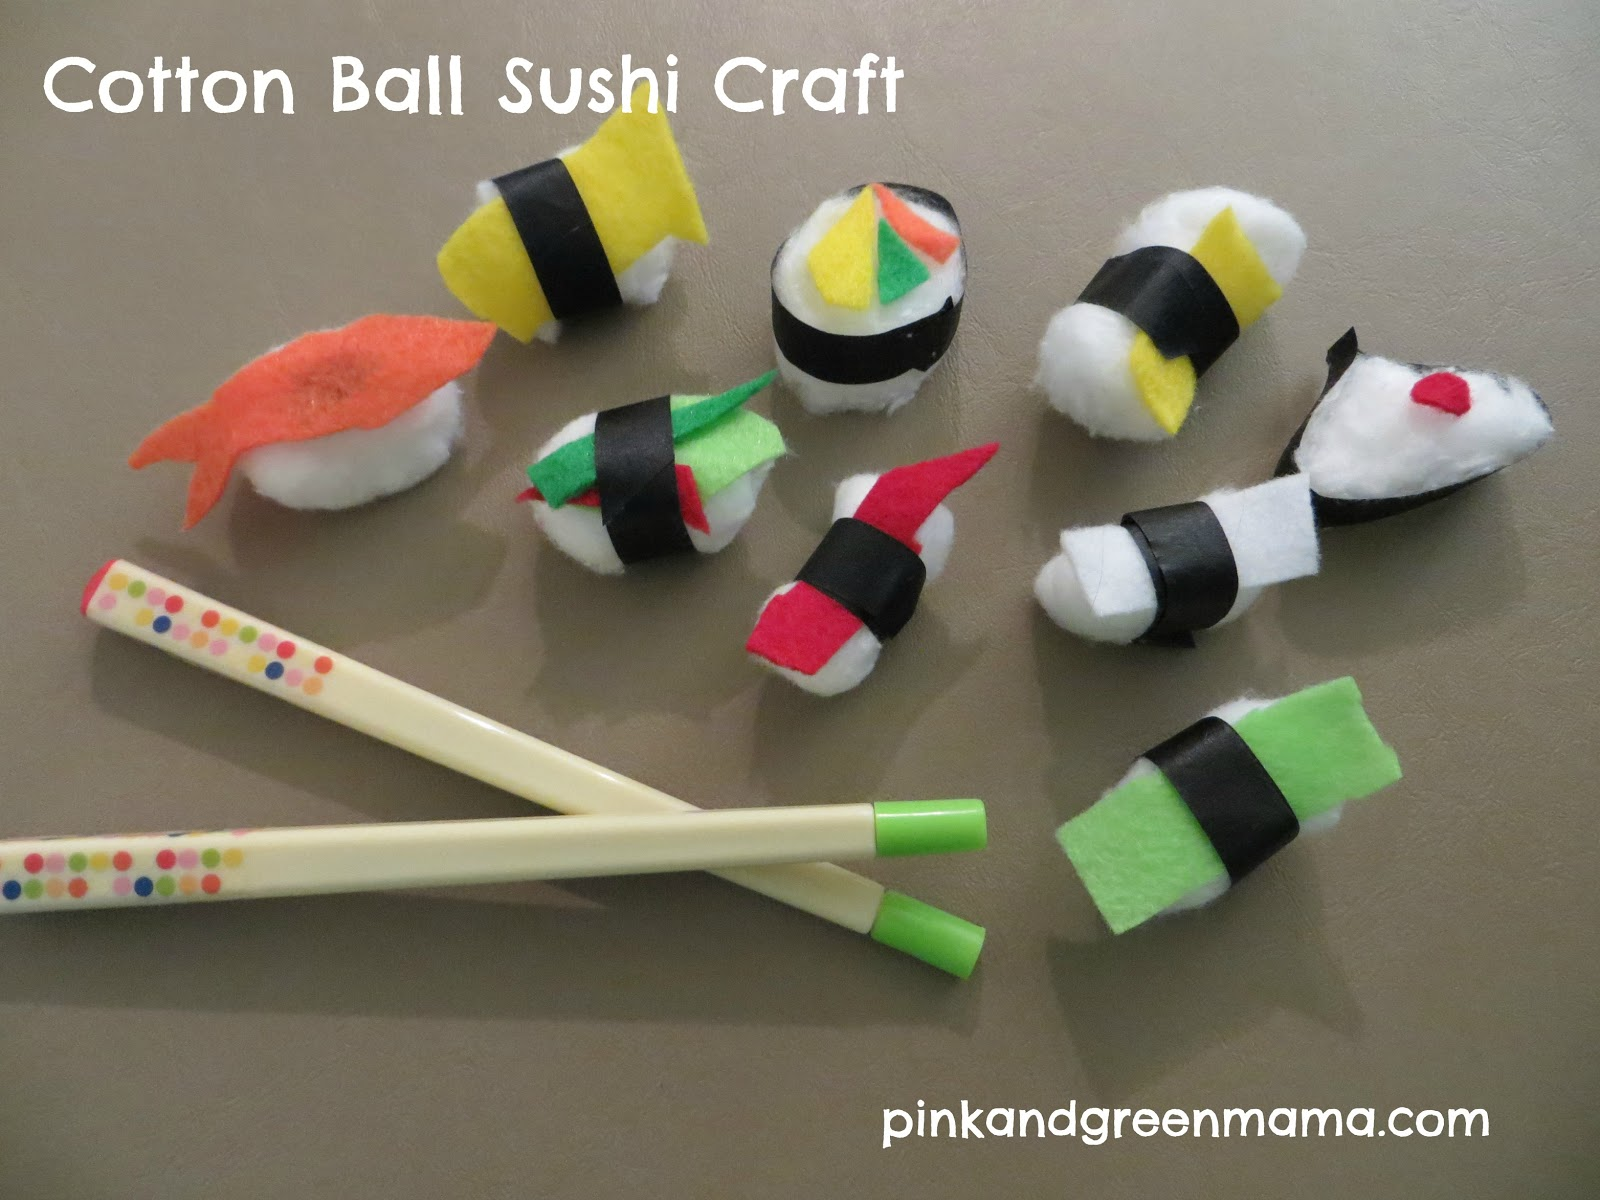 Sushi Cotton Ball Craft